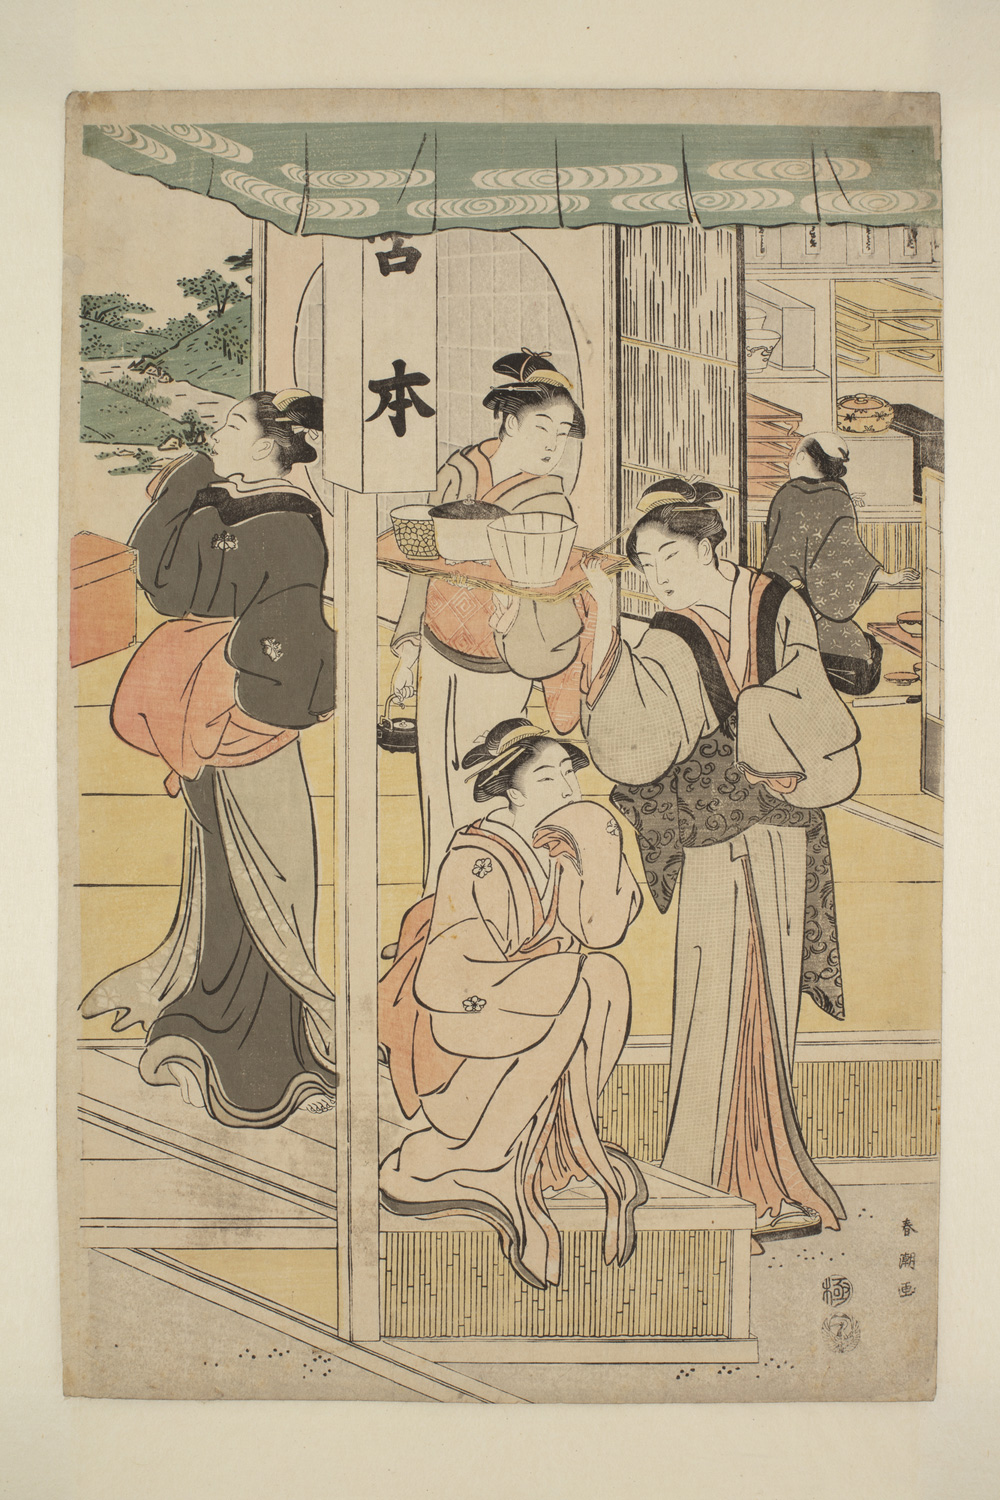 Japanese print of a group of women dressed in traditional clothes. One women stands and looks outside. Another is crouching down with a third standing and looking at her. Behind them another woman holds a tray with three bowls on it. At the back of the room are shelves and a figure looking at them.